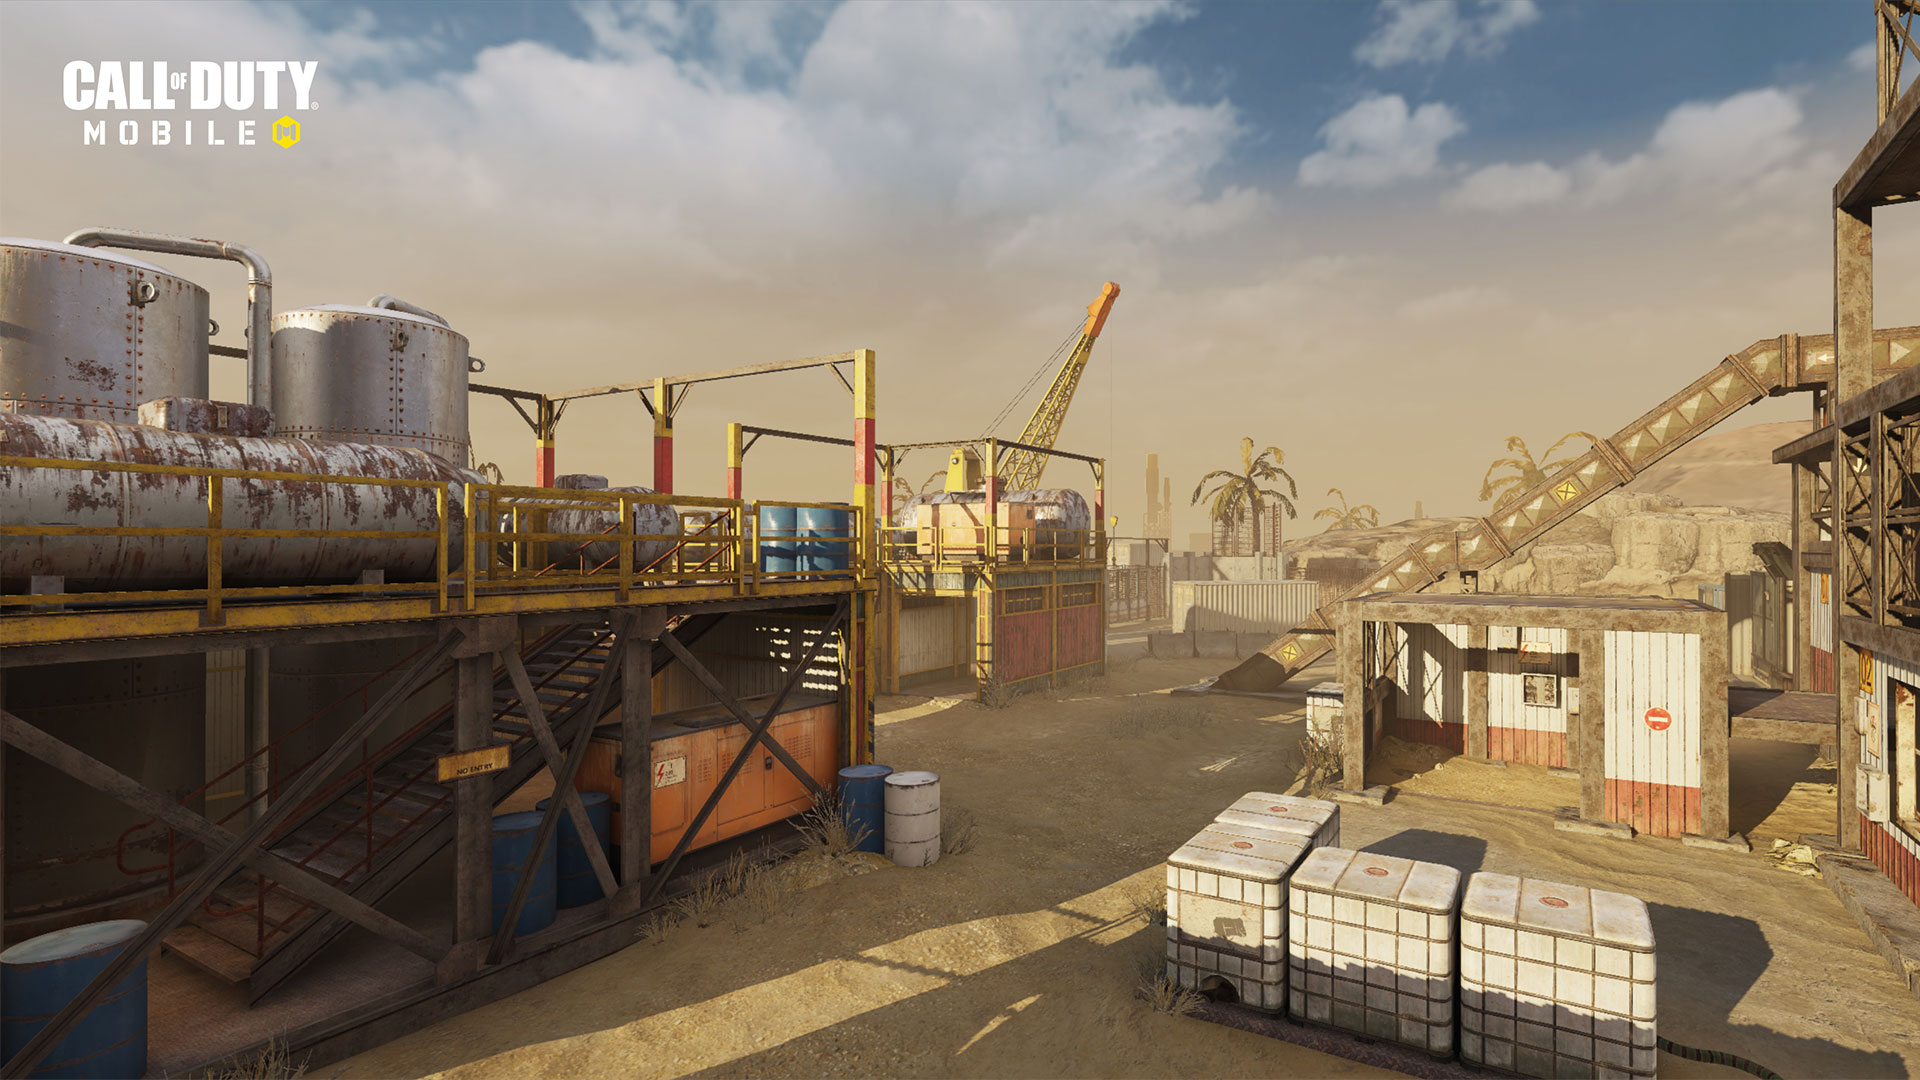 Call of Duty®: Mobile Map Snapshot: Rust - Image 6